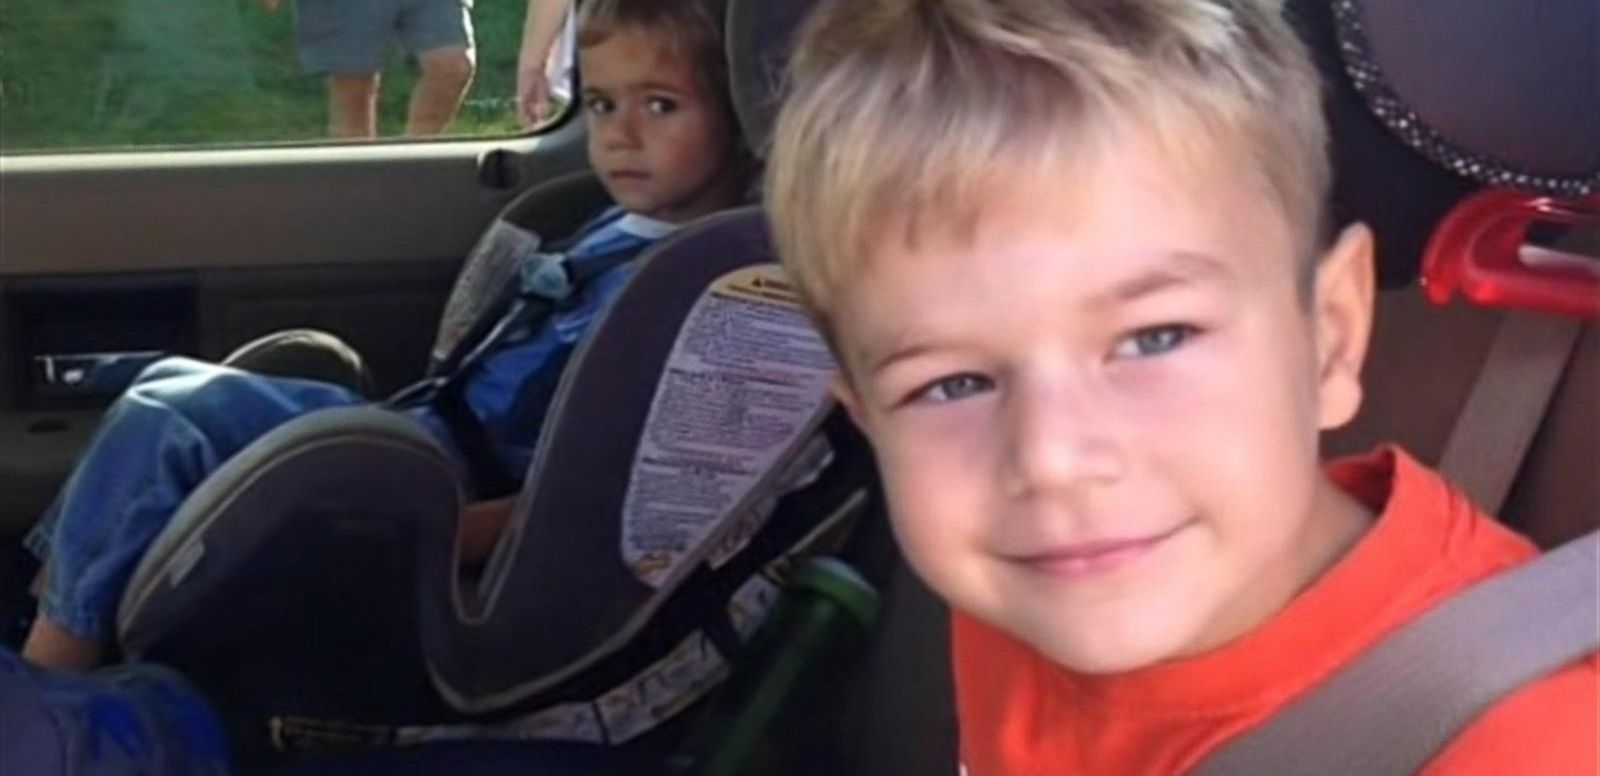 VIDEO: Boys Survive Kentucky Wilderness After Wandering Away From Campsite